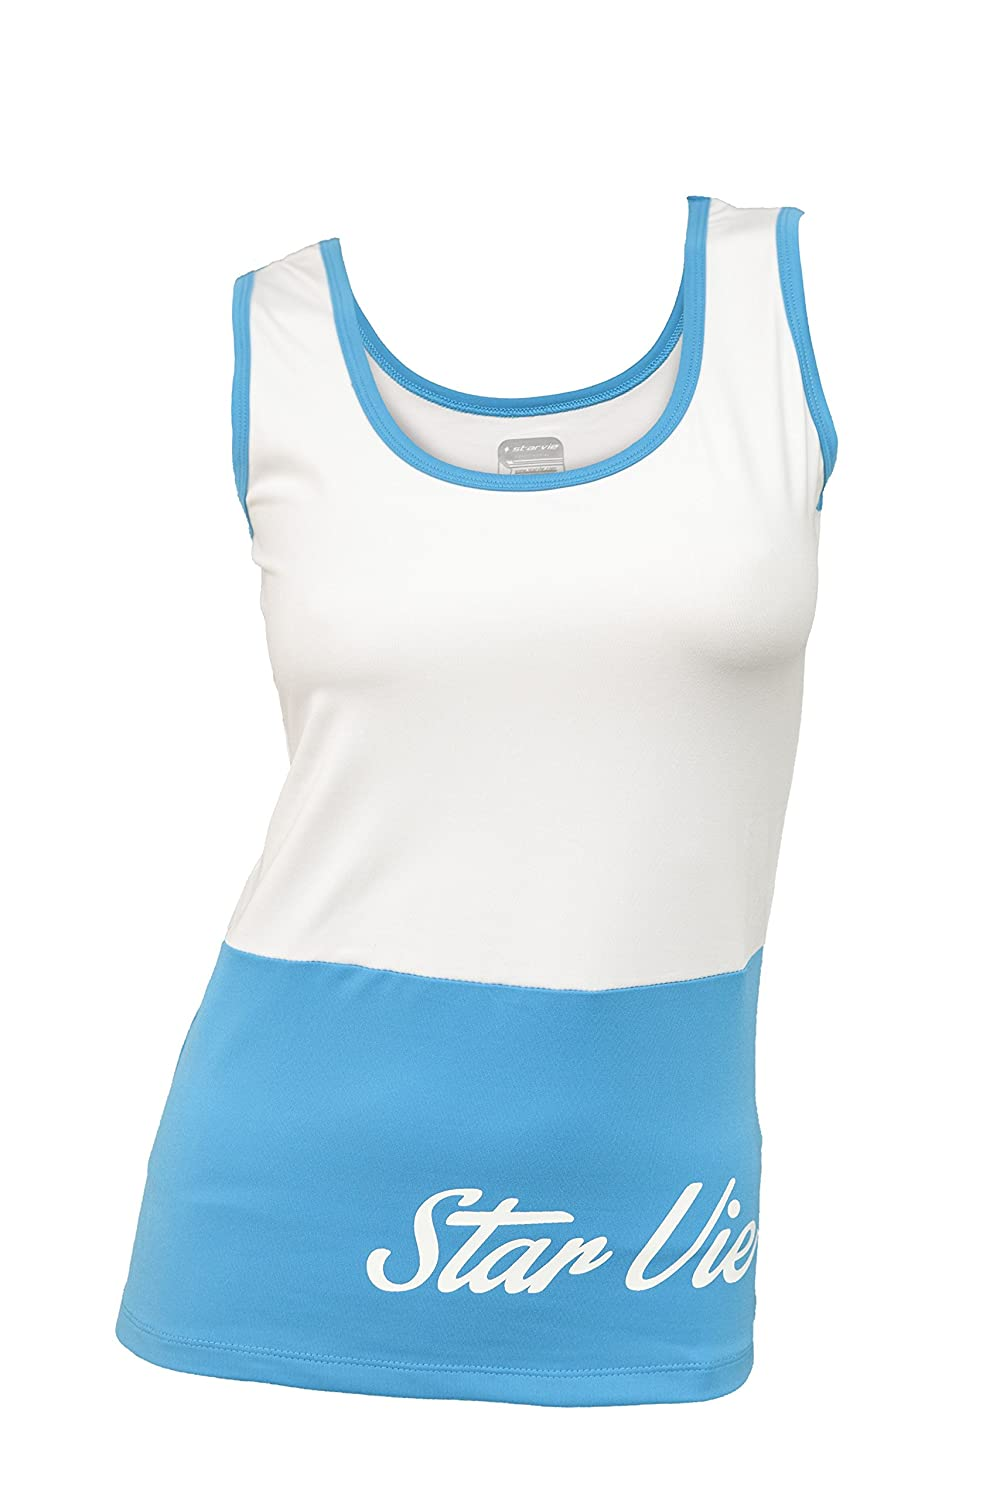 Top padel StarVie Reiter White (M): Amazon.es: Deportes y ...